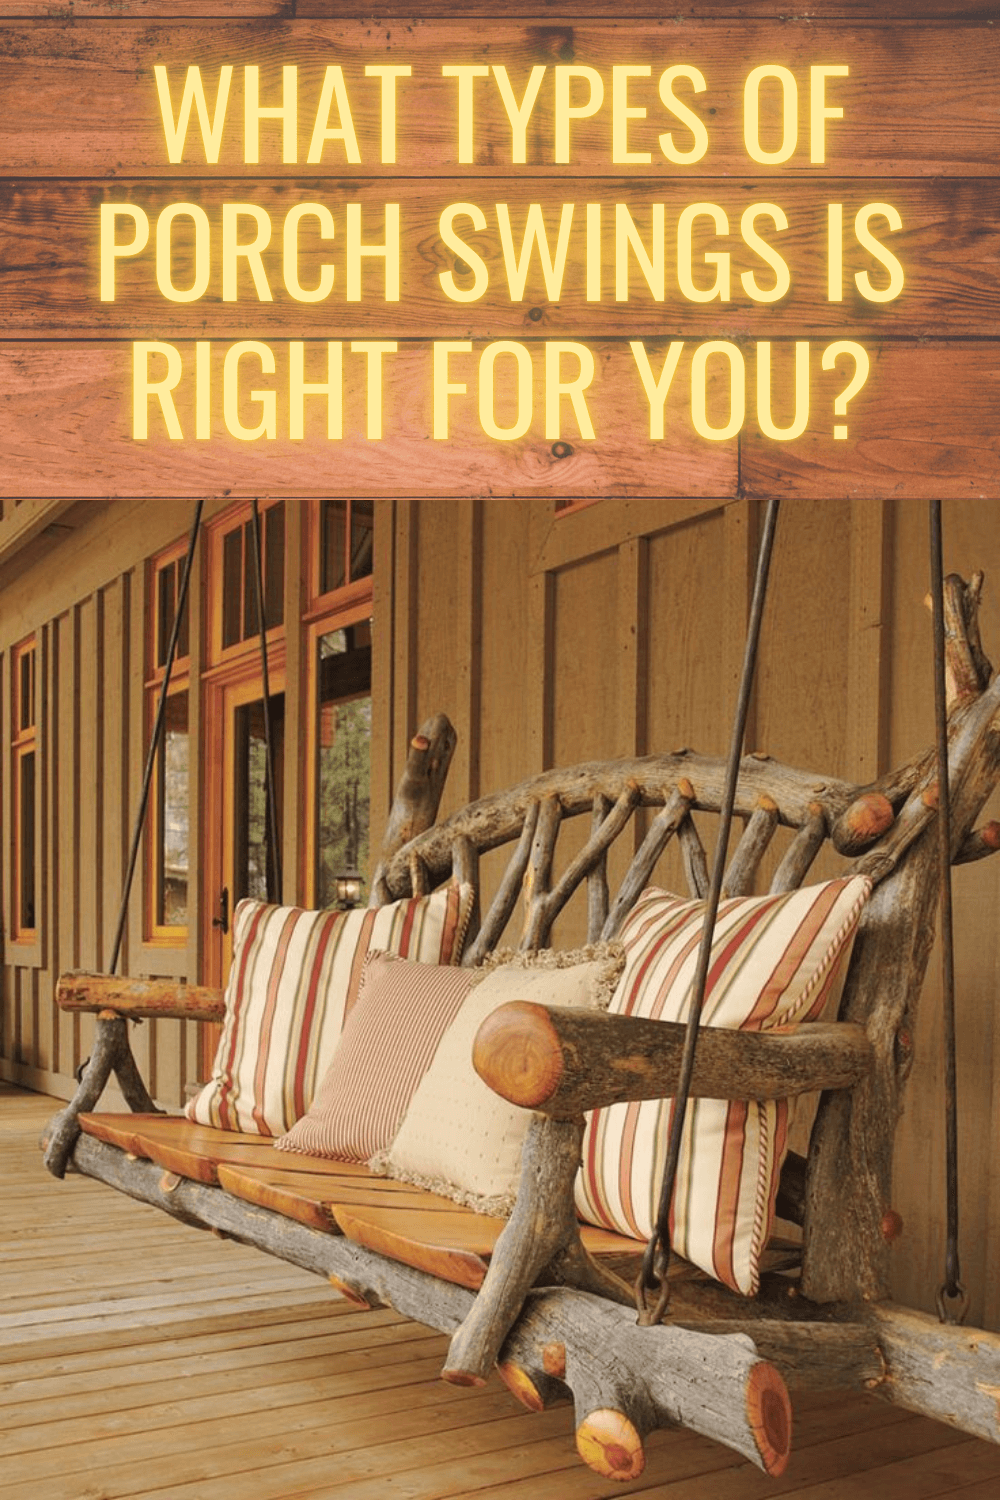 WHAT TYPES OF PORCH SWINGS IS RIGHT FOR YOU